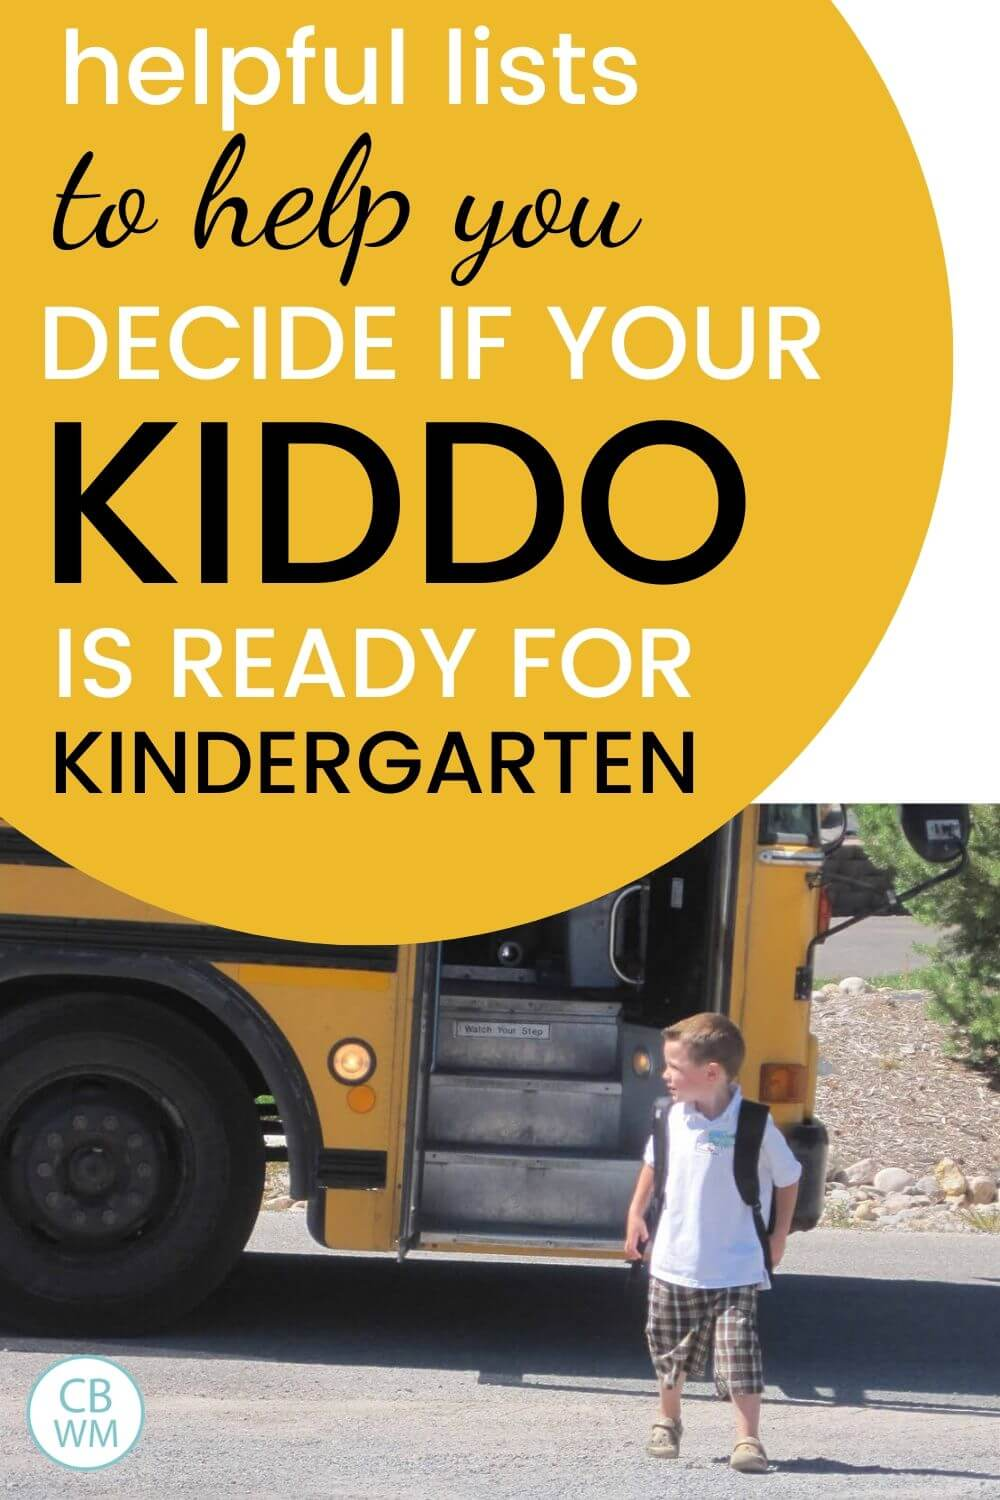 Helpful lists to decide if your little one is read for kindergarten pinnable image